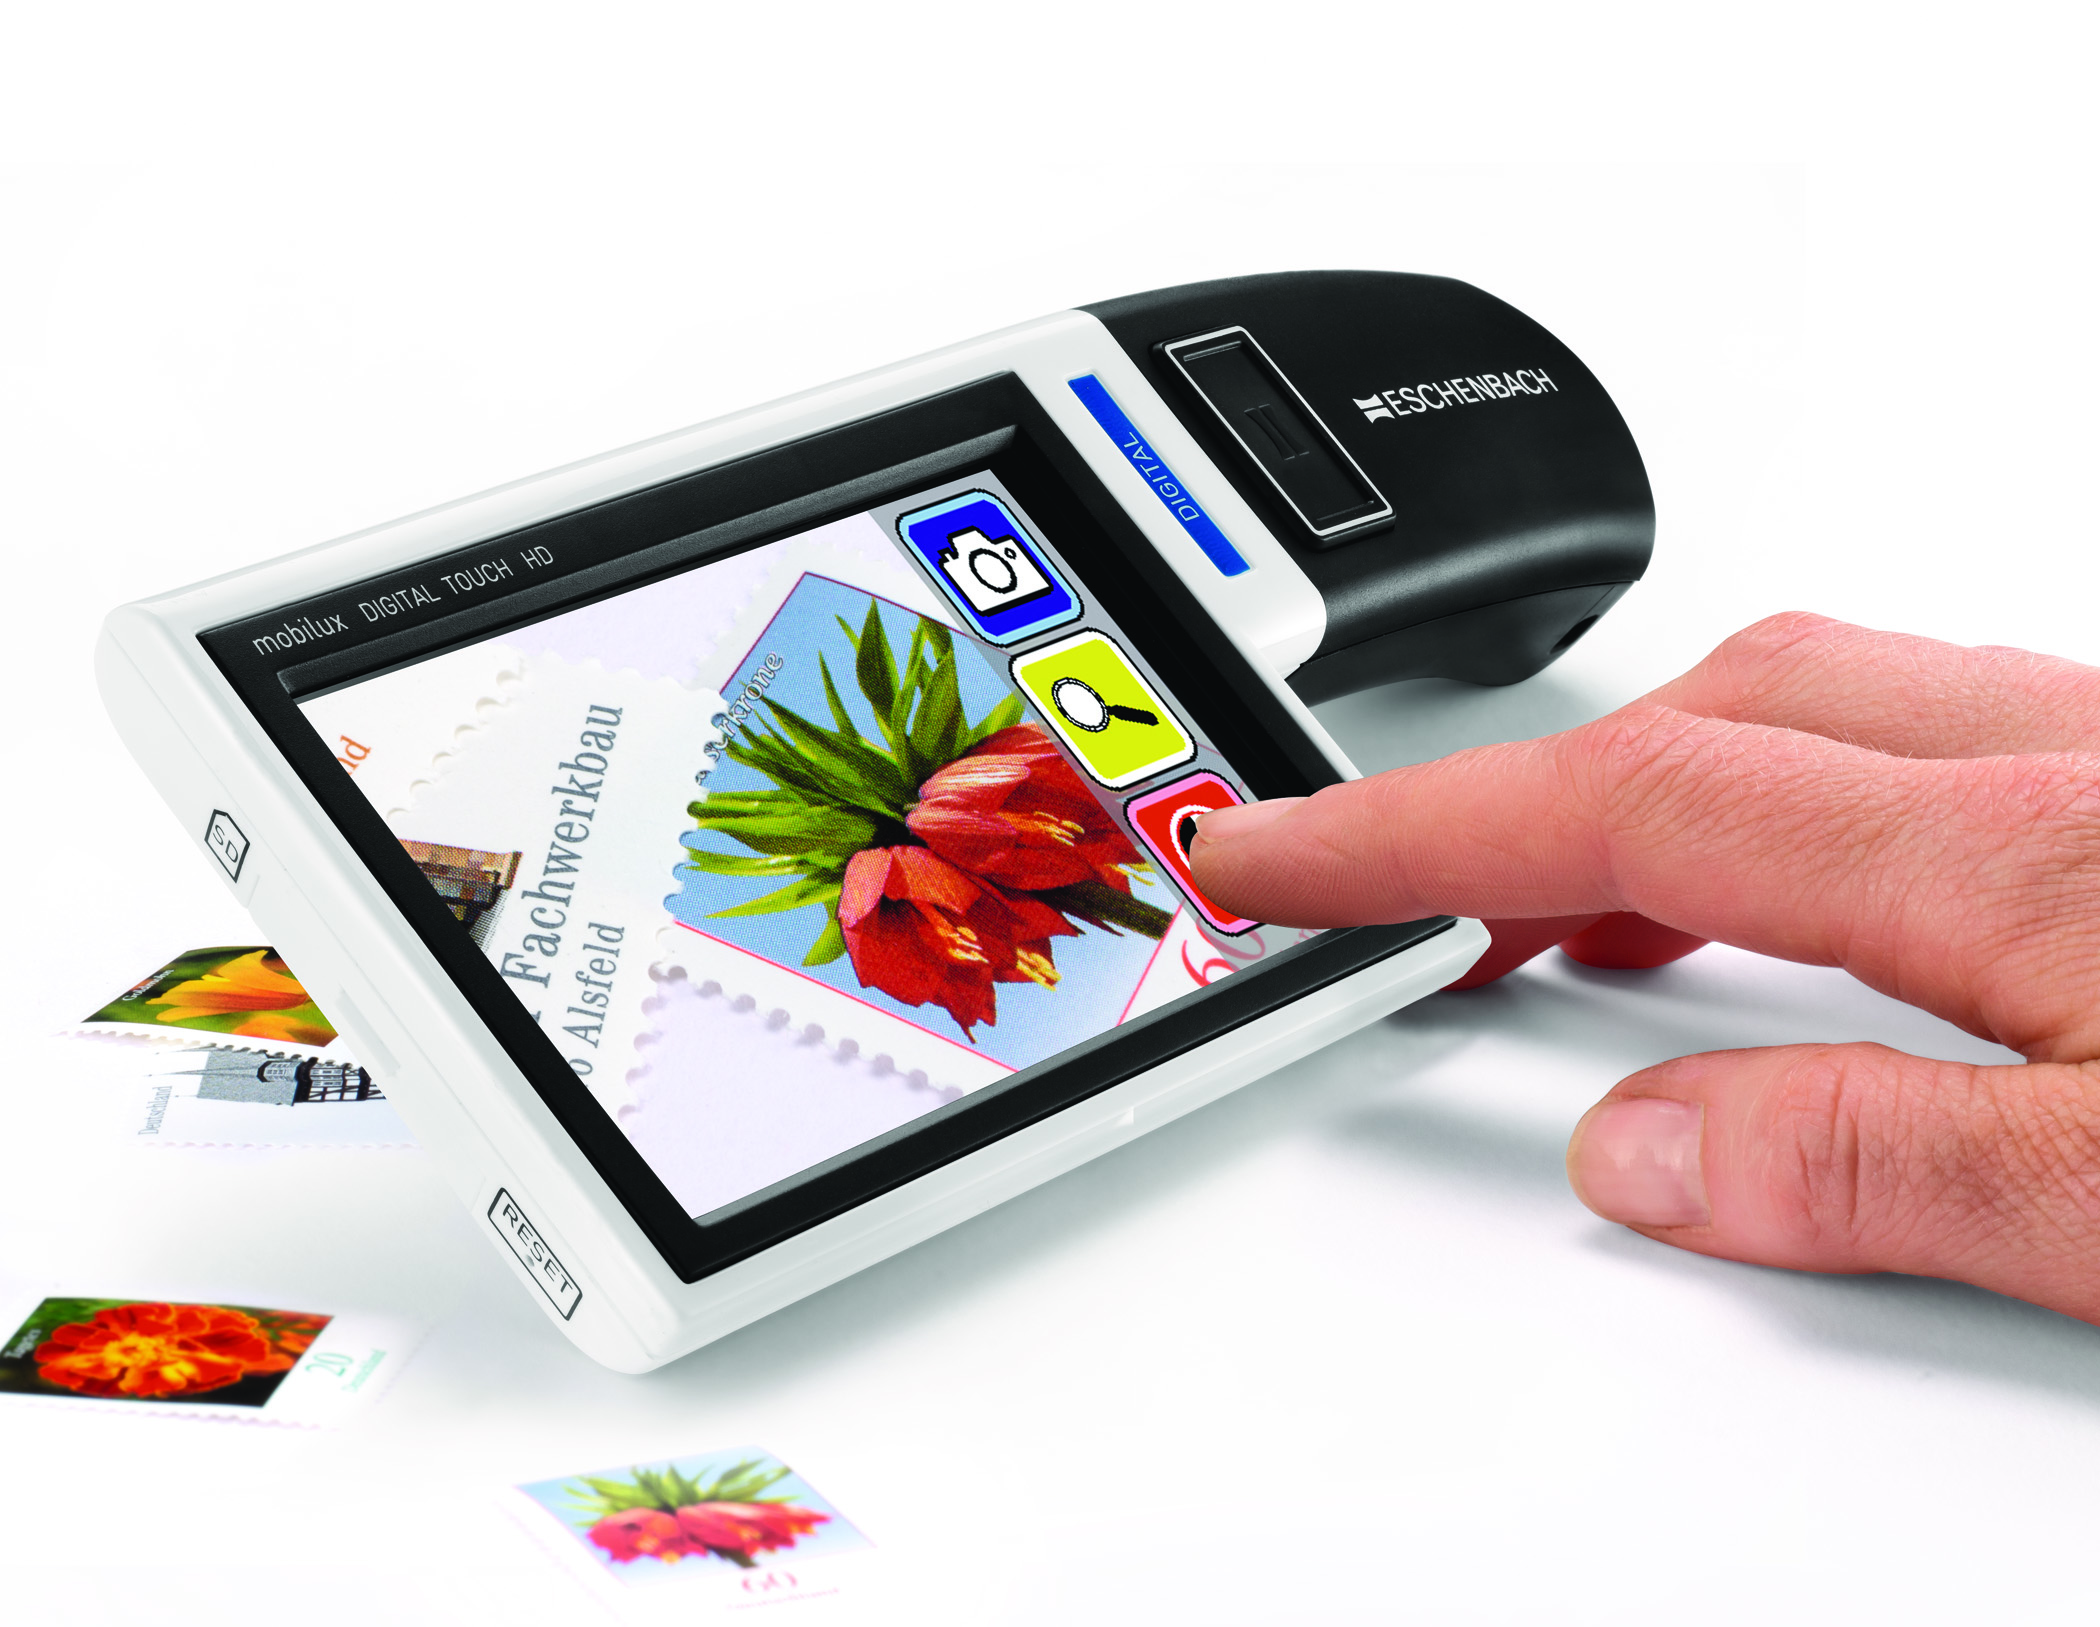 Mobilux Digital Touch 2 with stand 1655 11 300 dpi